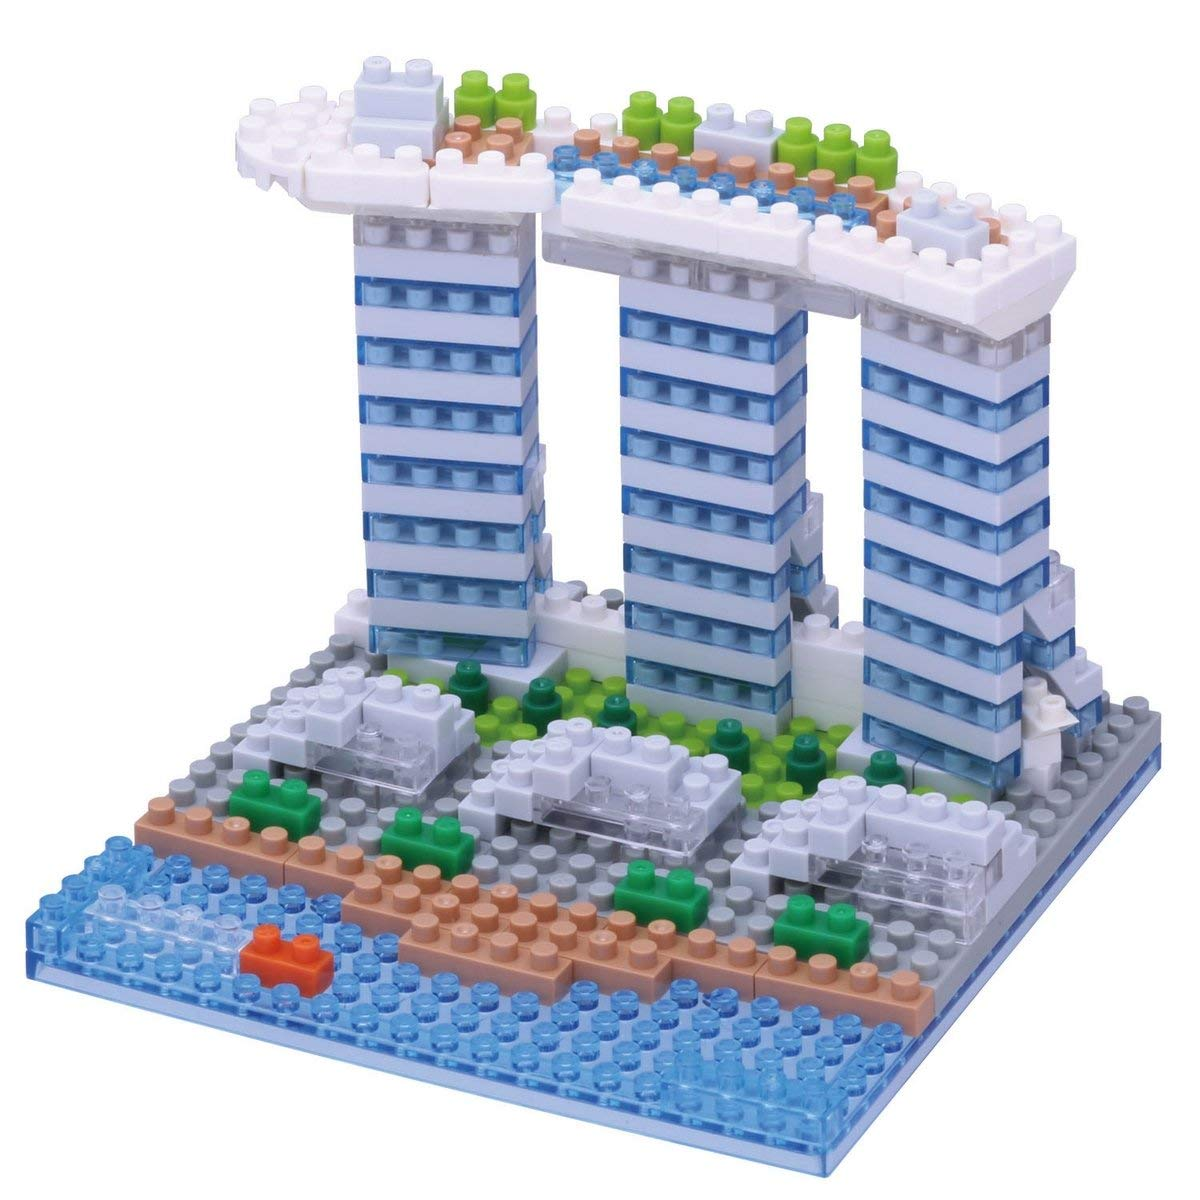 Nanoblock, Sight to See, Architecture, Marina Bay Sands